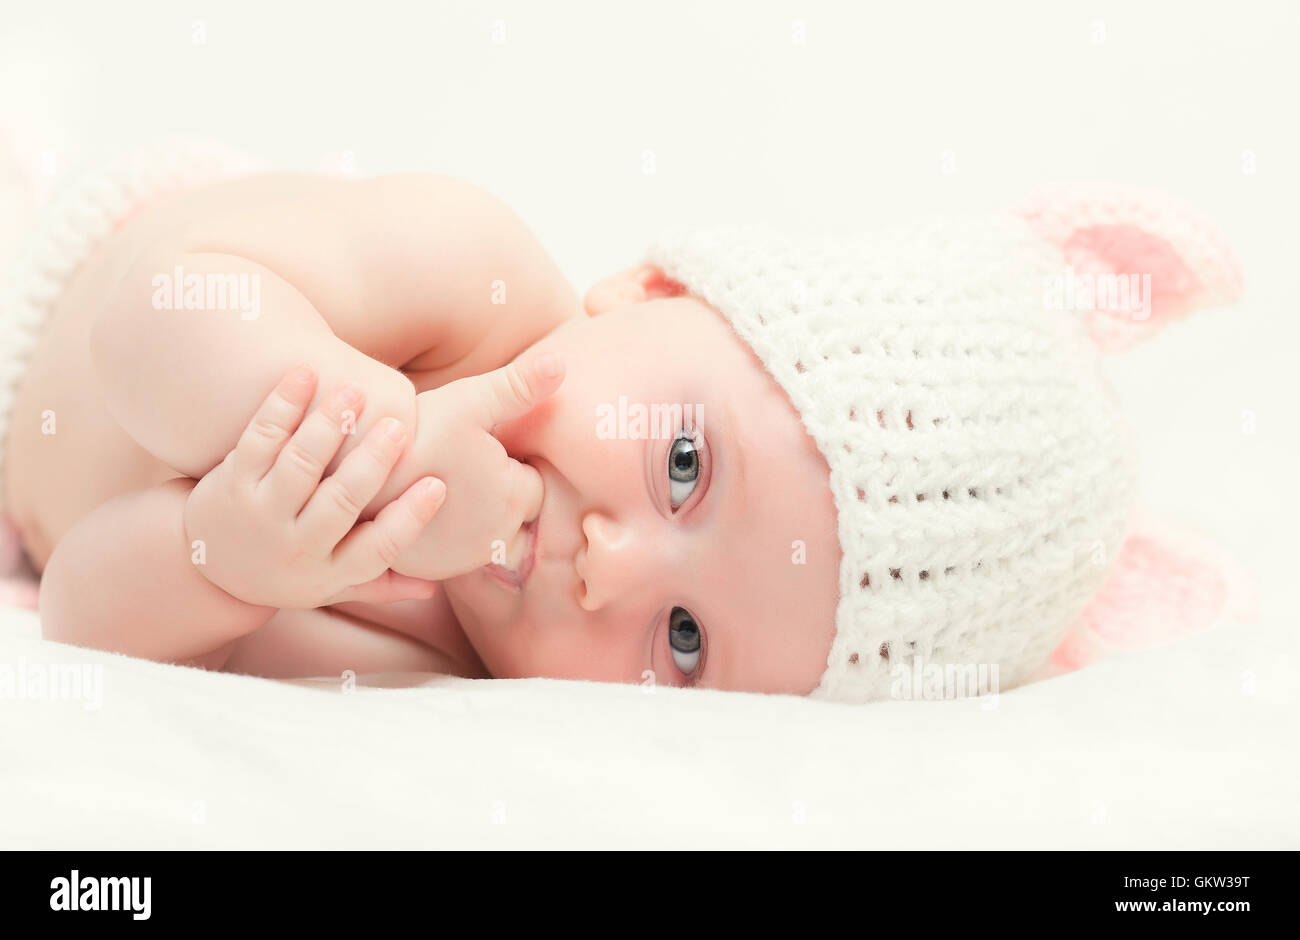 portrait of femail newborn with bunny woolen hat - Stock Image